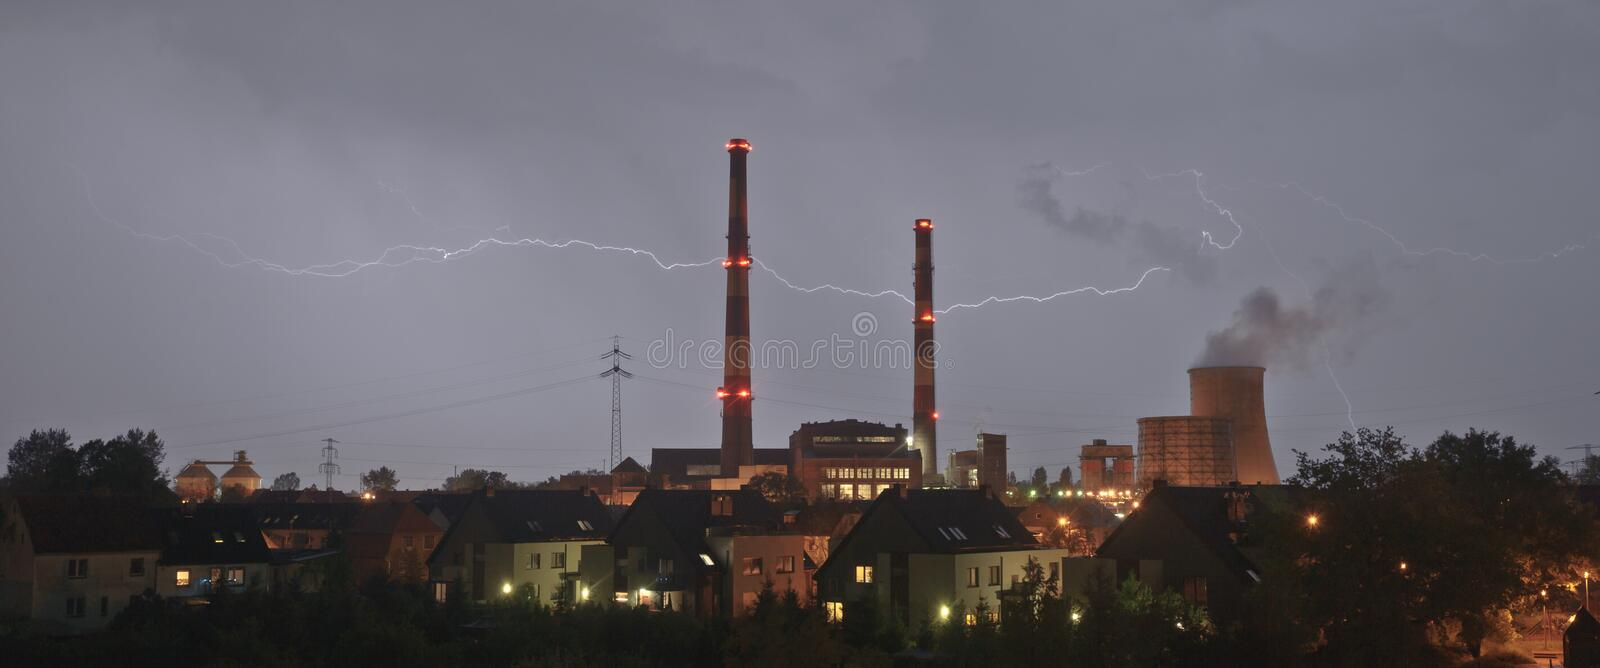 Lightning. Storm and lightning above power station stock images